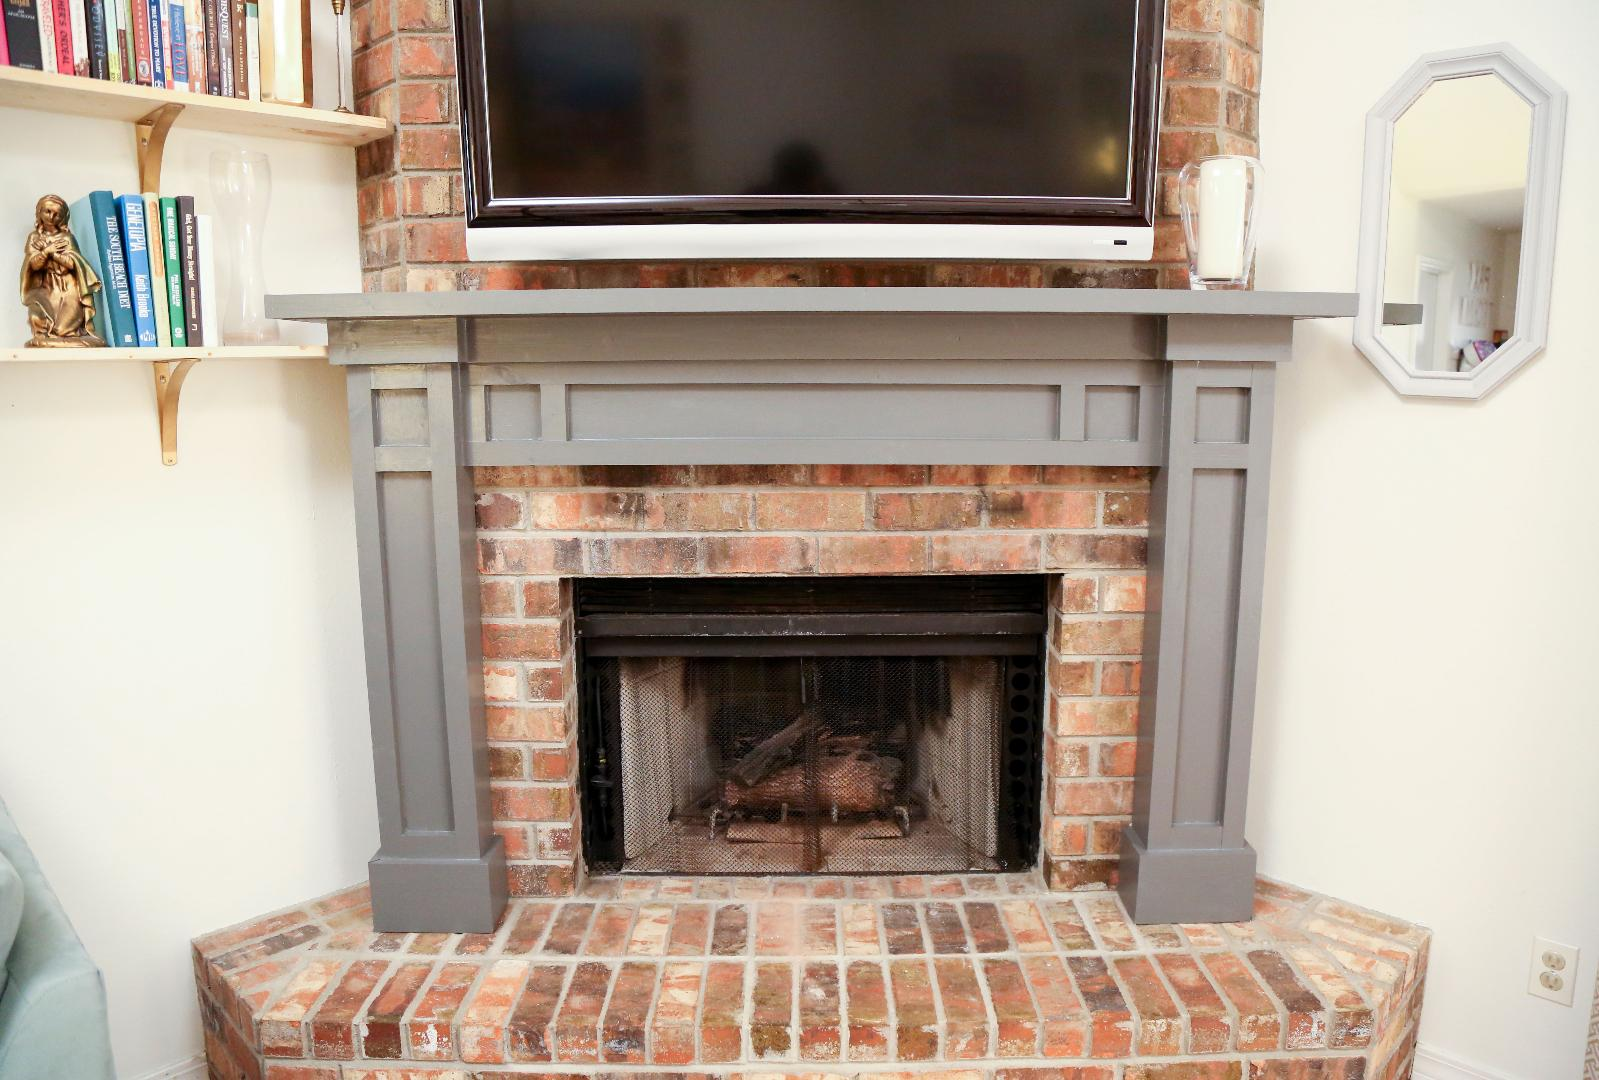 Dress Up Your Living Room With A DIY Fireplace Mantel